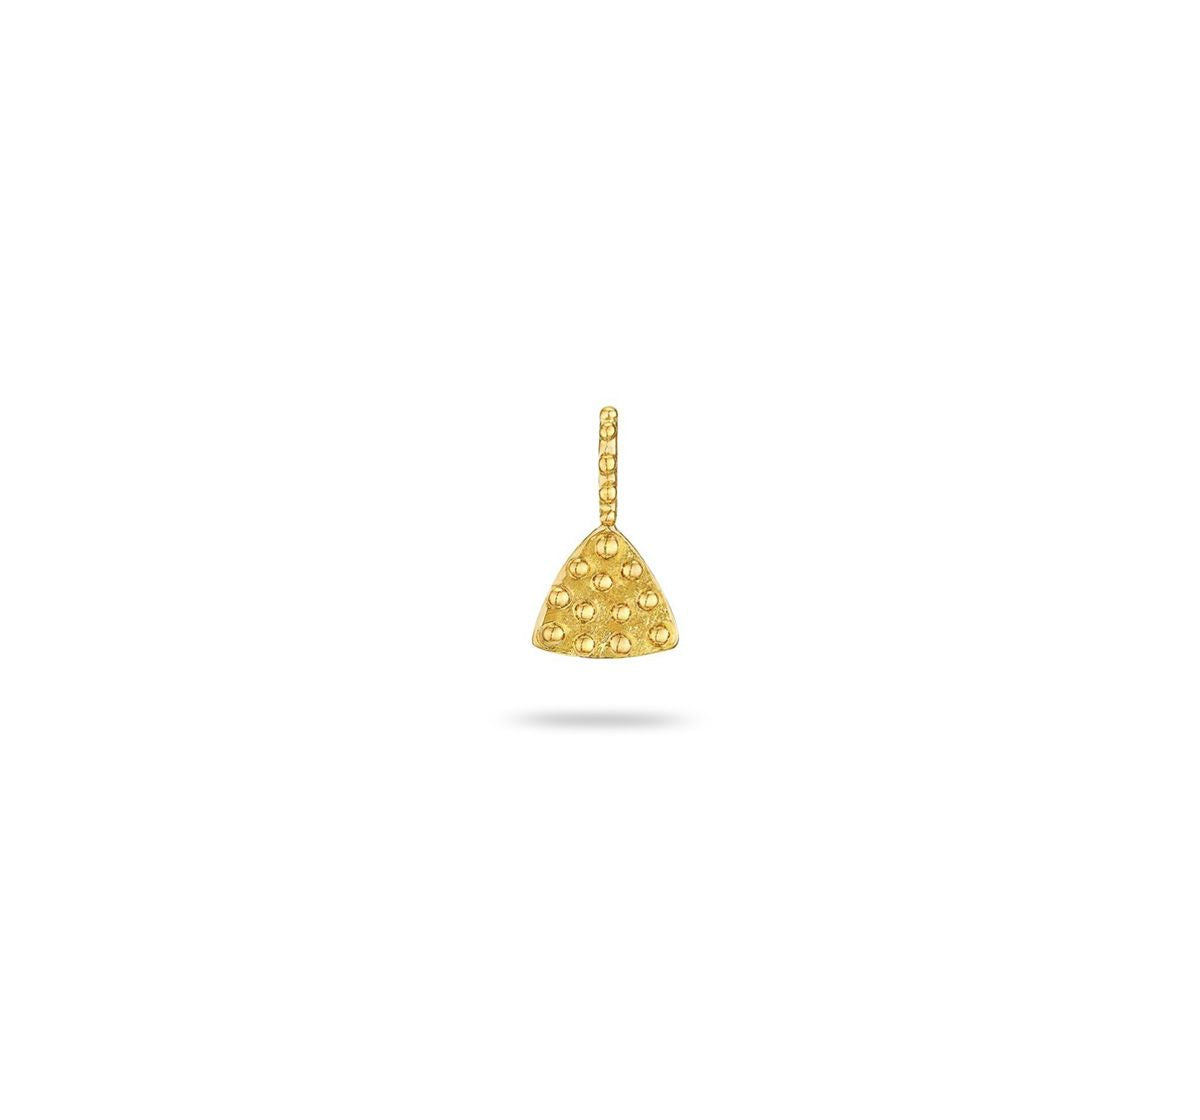 The Mini Triangle Symbol of Life Pendant